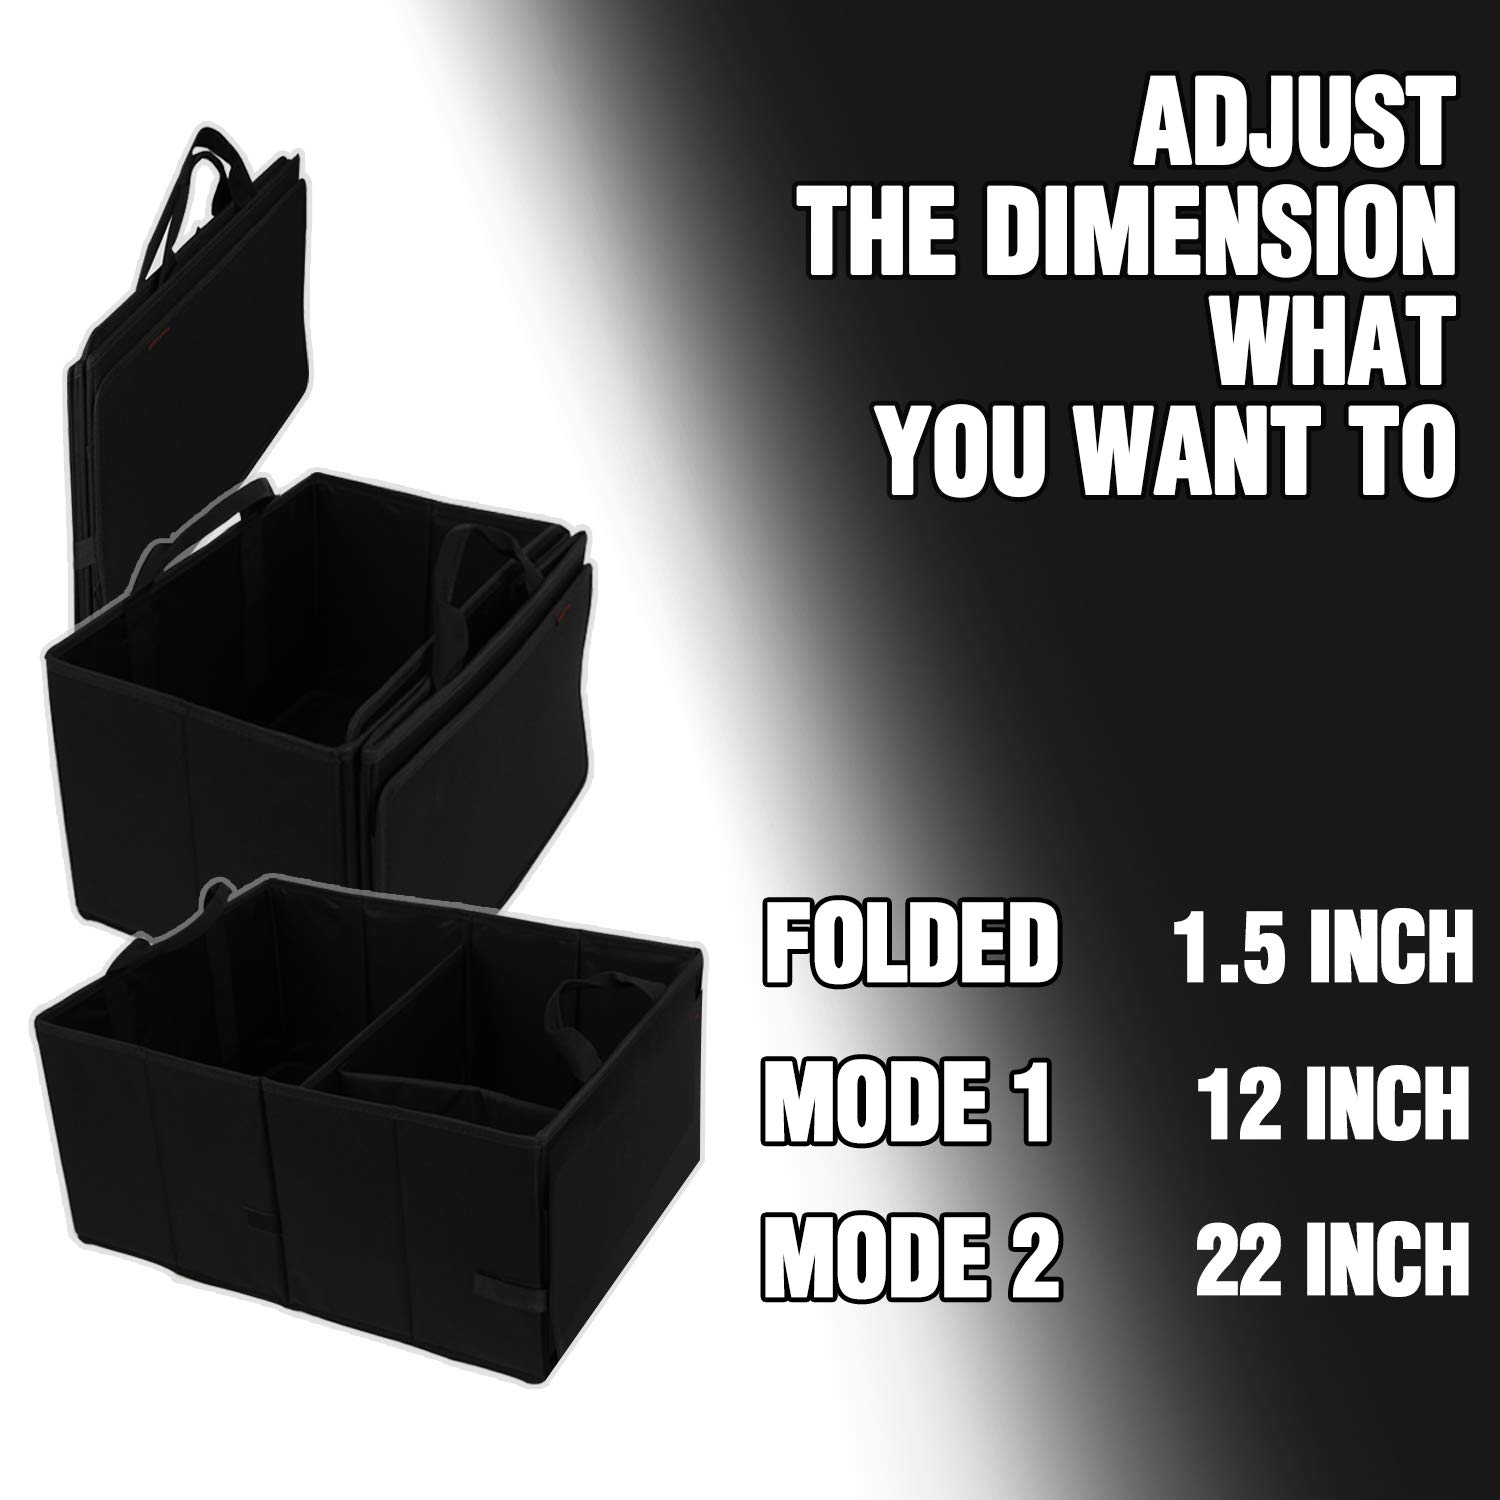 Strong Walls and Bottoms Trunk Organizer for Cars KMMOTORS Foldy Trunk Cargo Organizer Auto Sturdy and Collapsible Foldable Car Trunk Organizer for SUV Truck Sedan Big Size